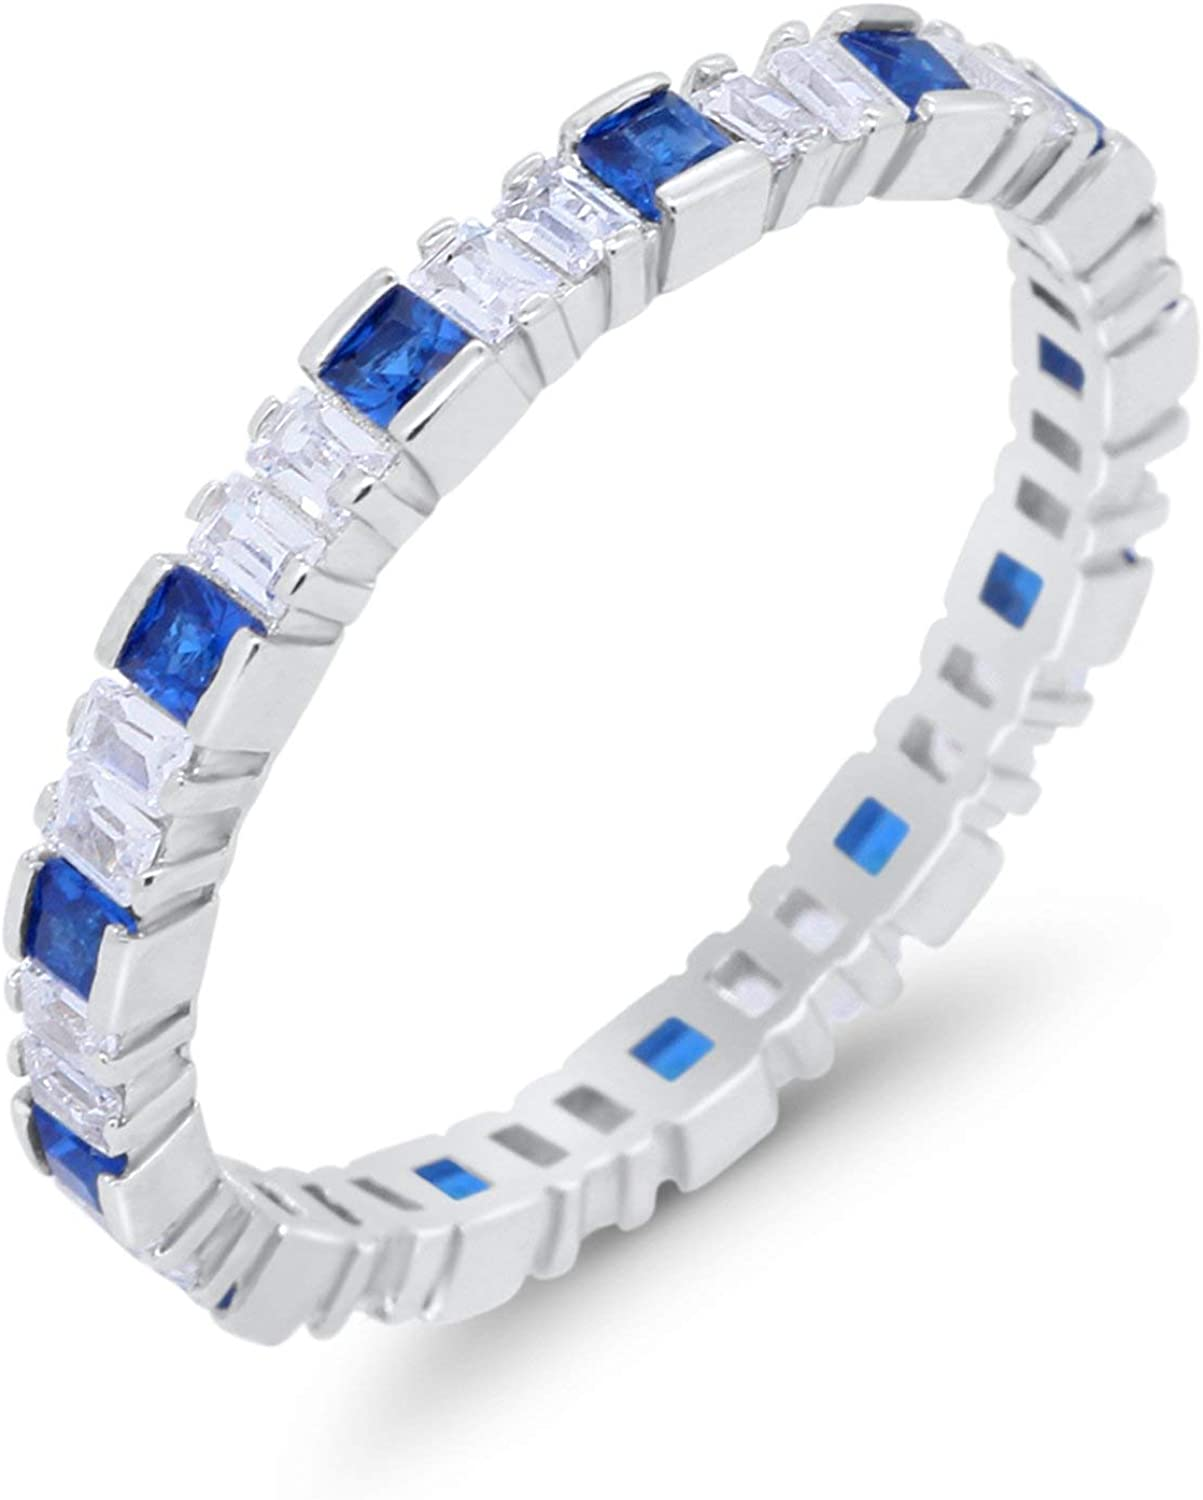 Blue Apple Co. Baguette Princess Full Eternity Stackable Wedding Band Ring Cubic Zirconia 925 Sterling Silver